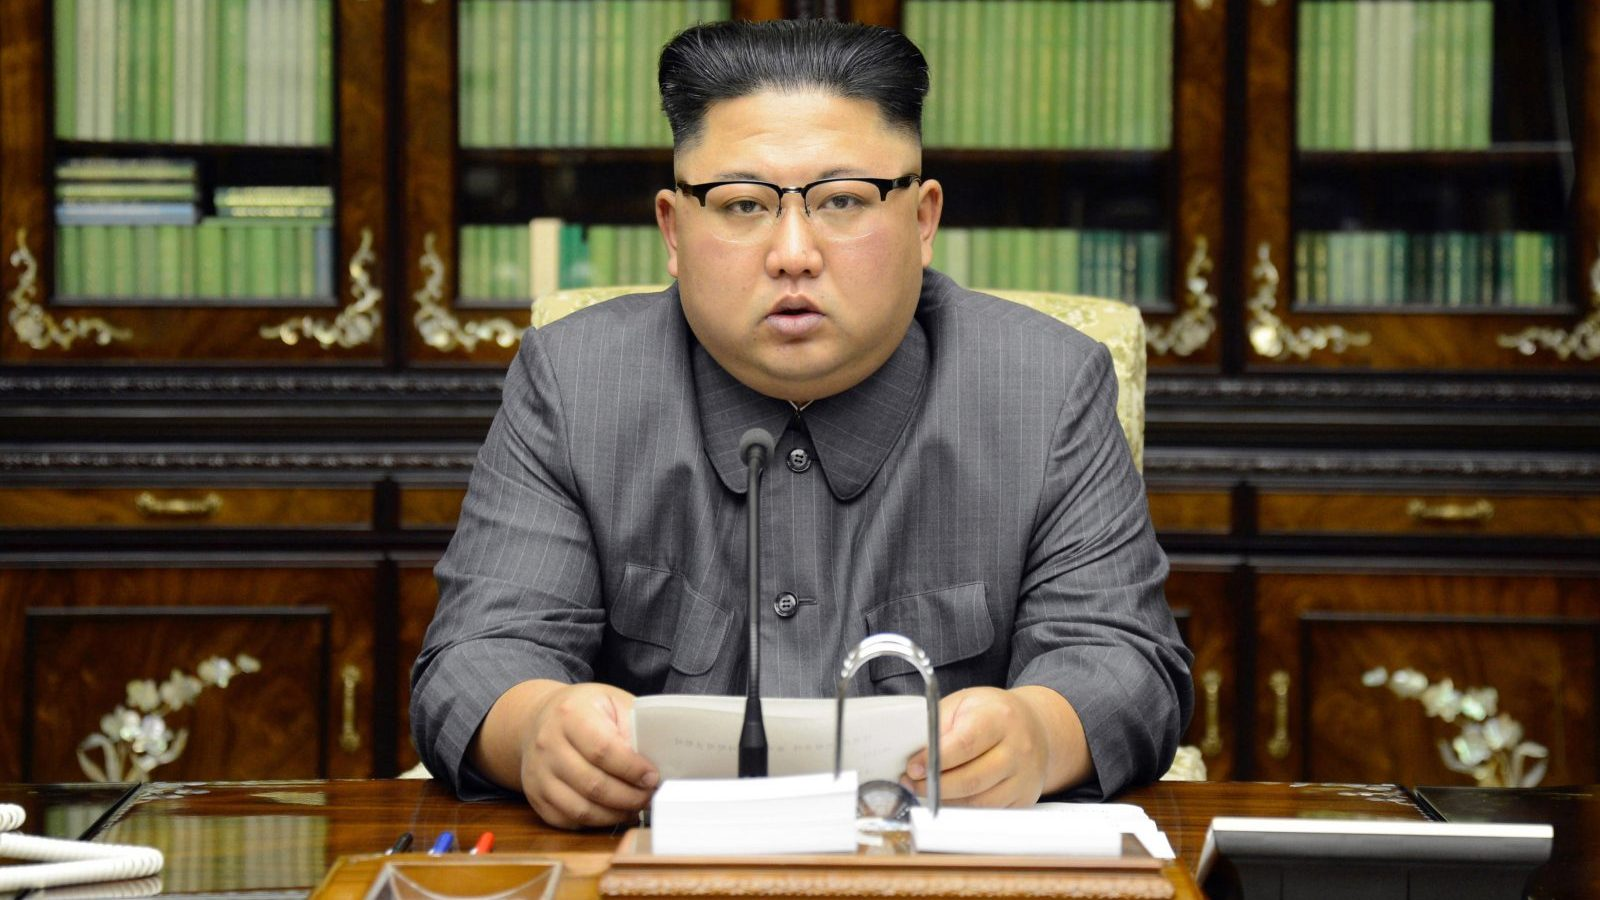 epa06218938 A photo released by the North Korean Central News Agency (KCNA), the state news agency of North Korea, shows North Korean Supreme Leader Kim Jong-un delivering a speech in Pyongyang, North Korea, 21 September 2017 (issued 22 September 2017). The North Korean leader released a statement on the day vowing to make US President Donald J. Trump 'pay dearly' for threatening North Korea in remarks he made during the 72nd United Nations General Assembly held in New York, USA. President Trump, during the assembly on 19 September 2017, vowed to 'totally destroy' North Korea if it posed threats to the USA and its allies.